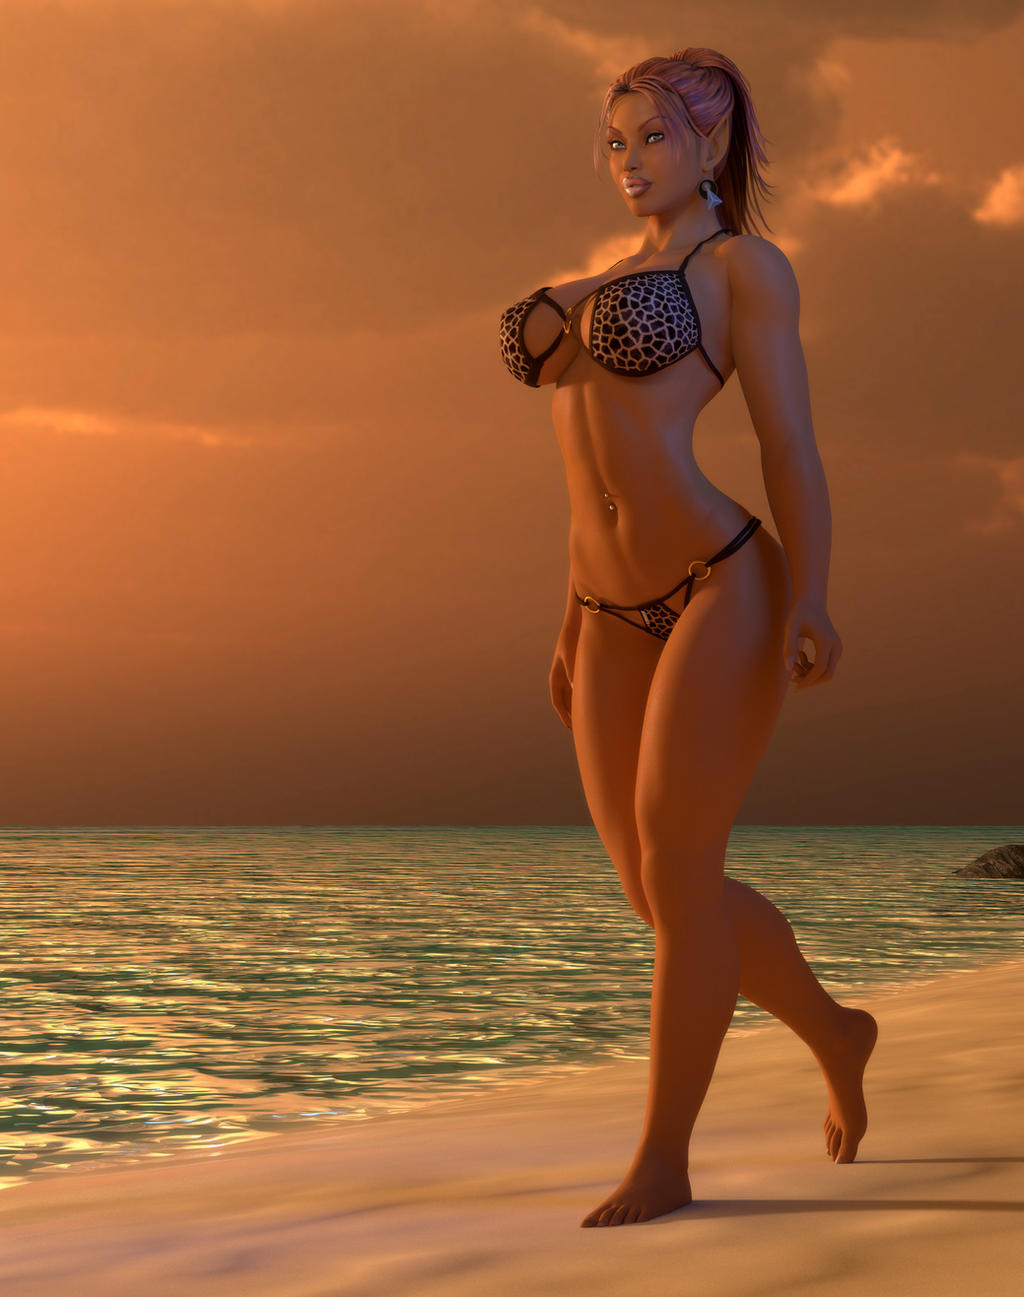 Silieva Sunset Walk by willdial